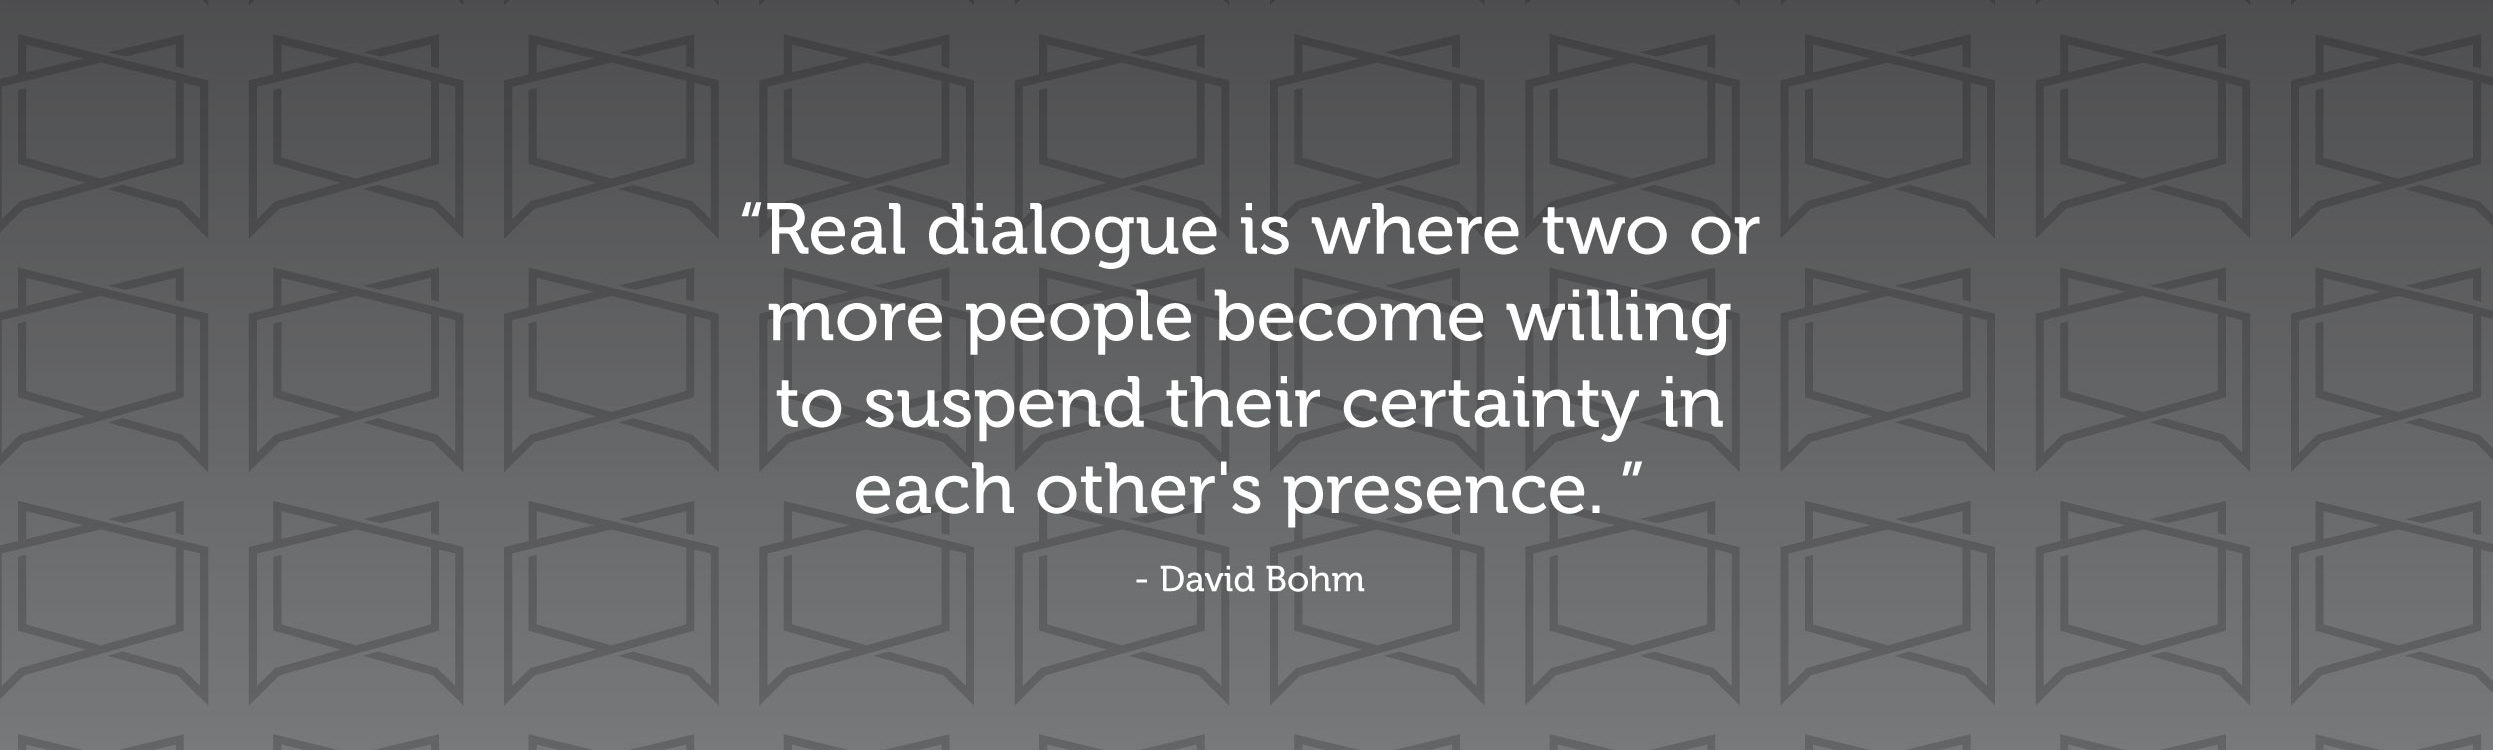 """Real dialogue is where two or more people becoming willing to suspend their certainty in each other's presence."" —David Bohm"